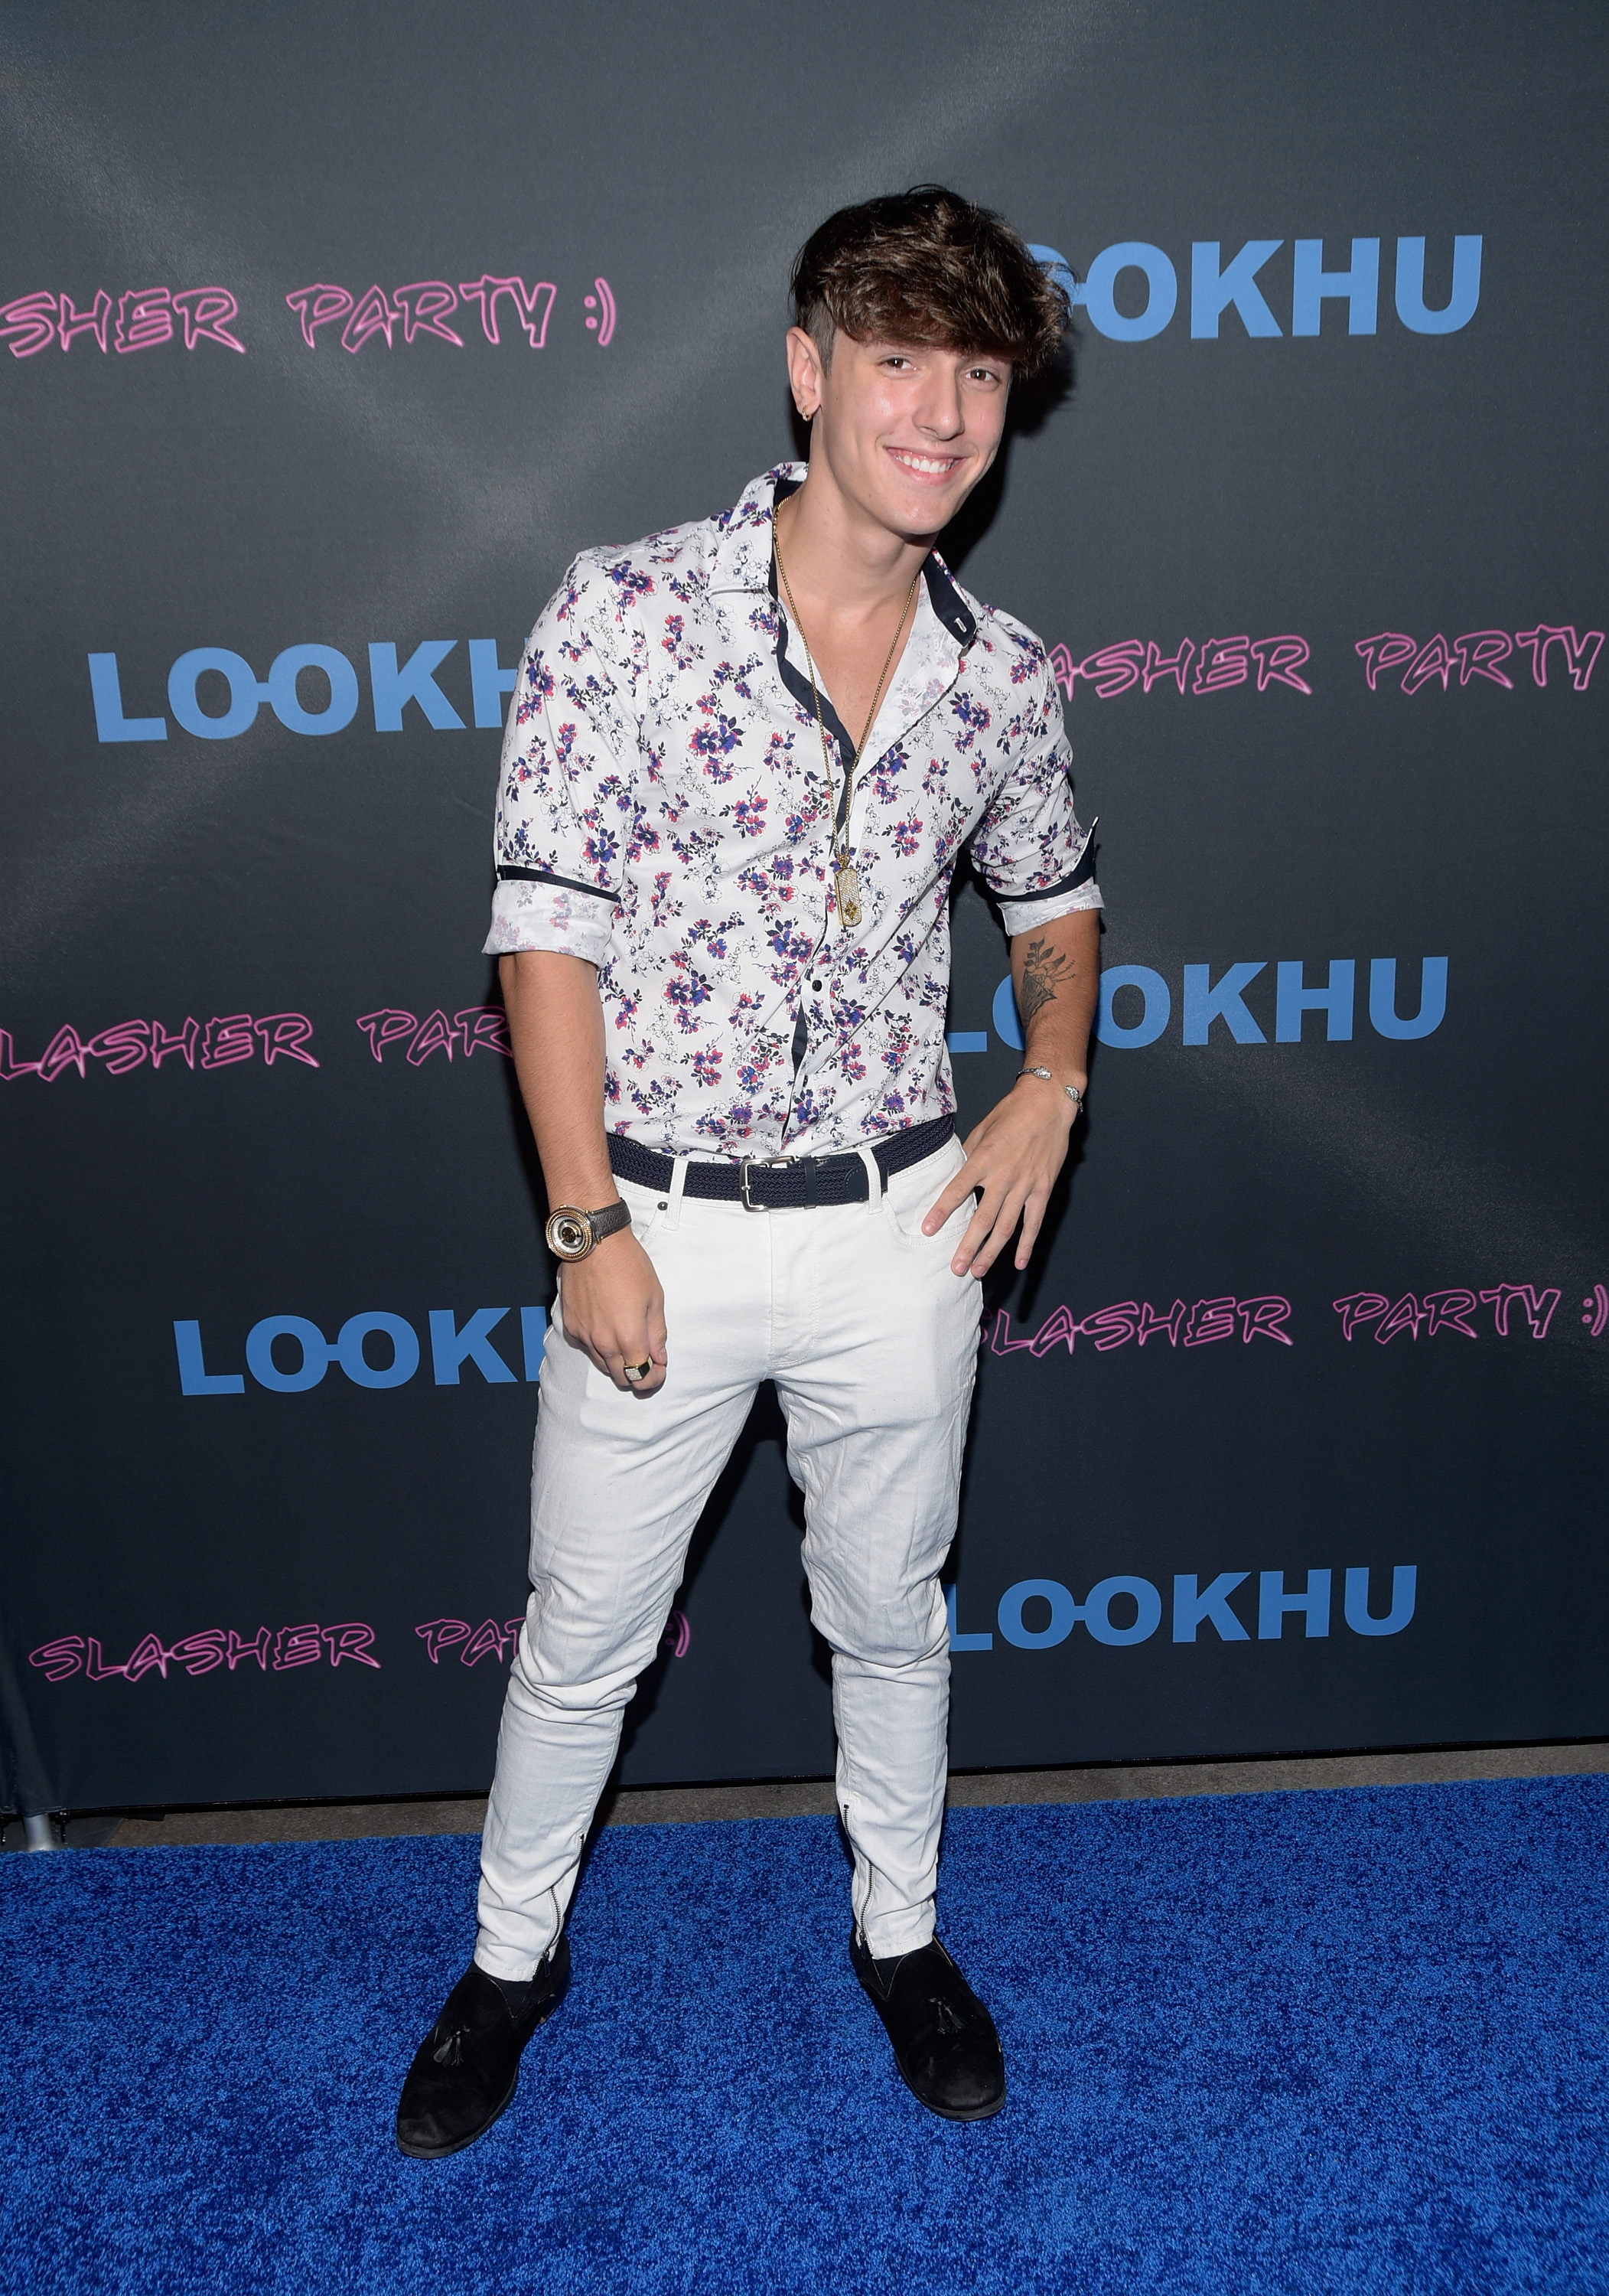 """Influencer Bryce Hall attends the premiere party for LookHu's """"Slasher Party"""" at ArcLight Hollywood on September 18, 2018."""